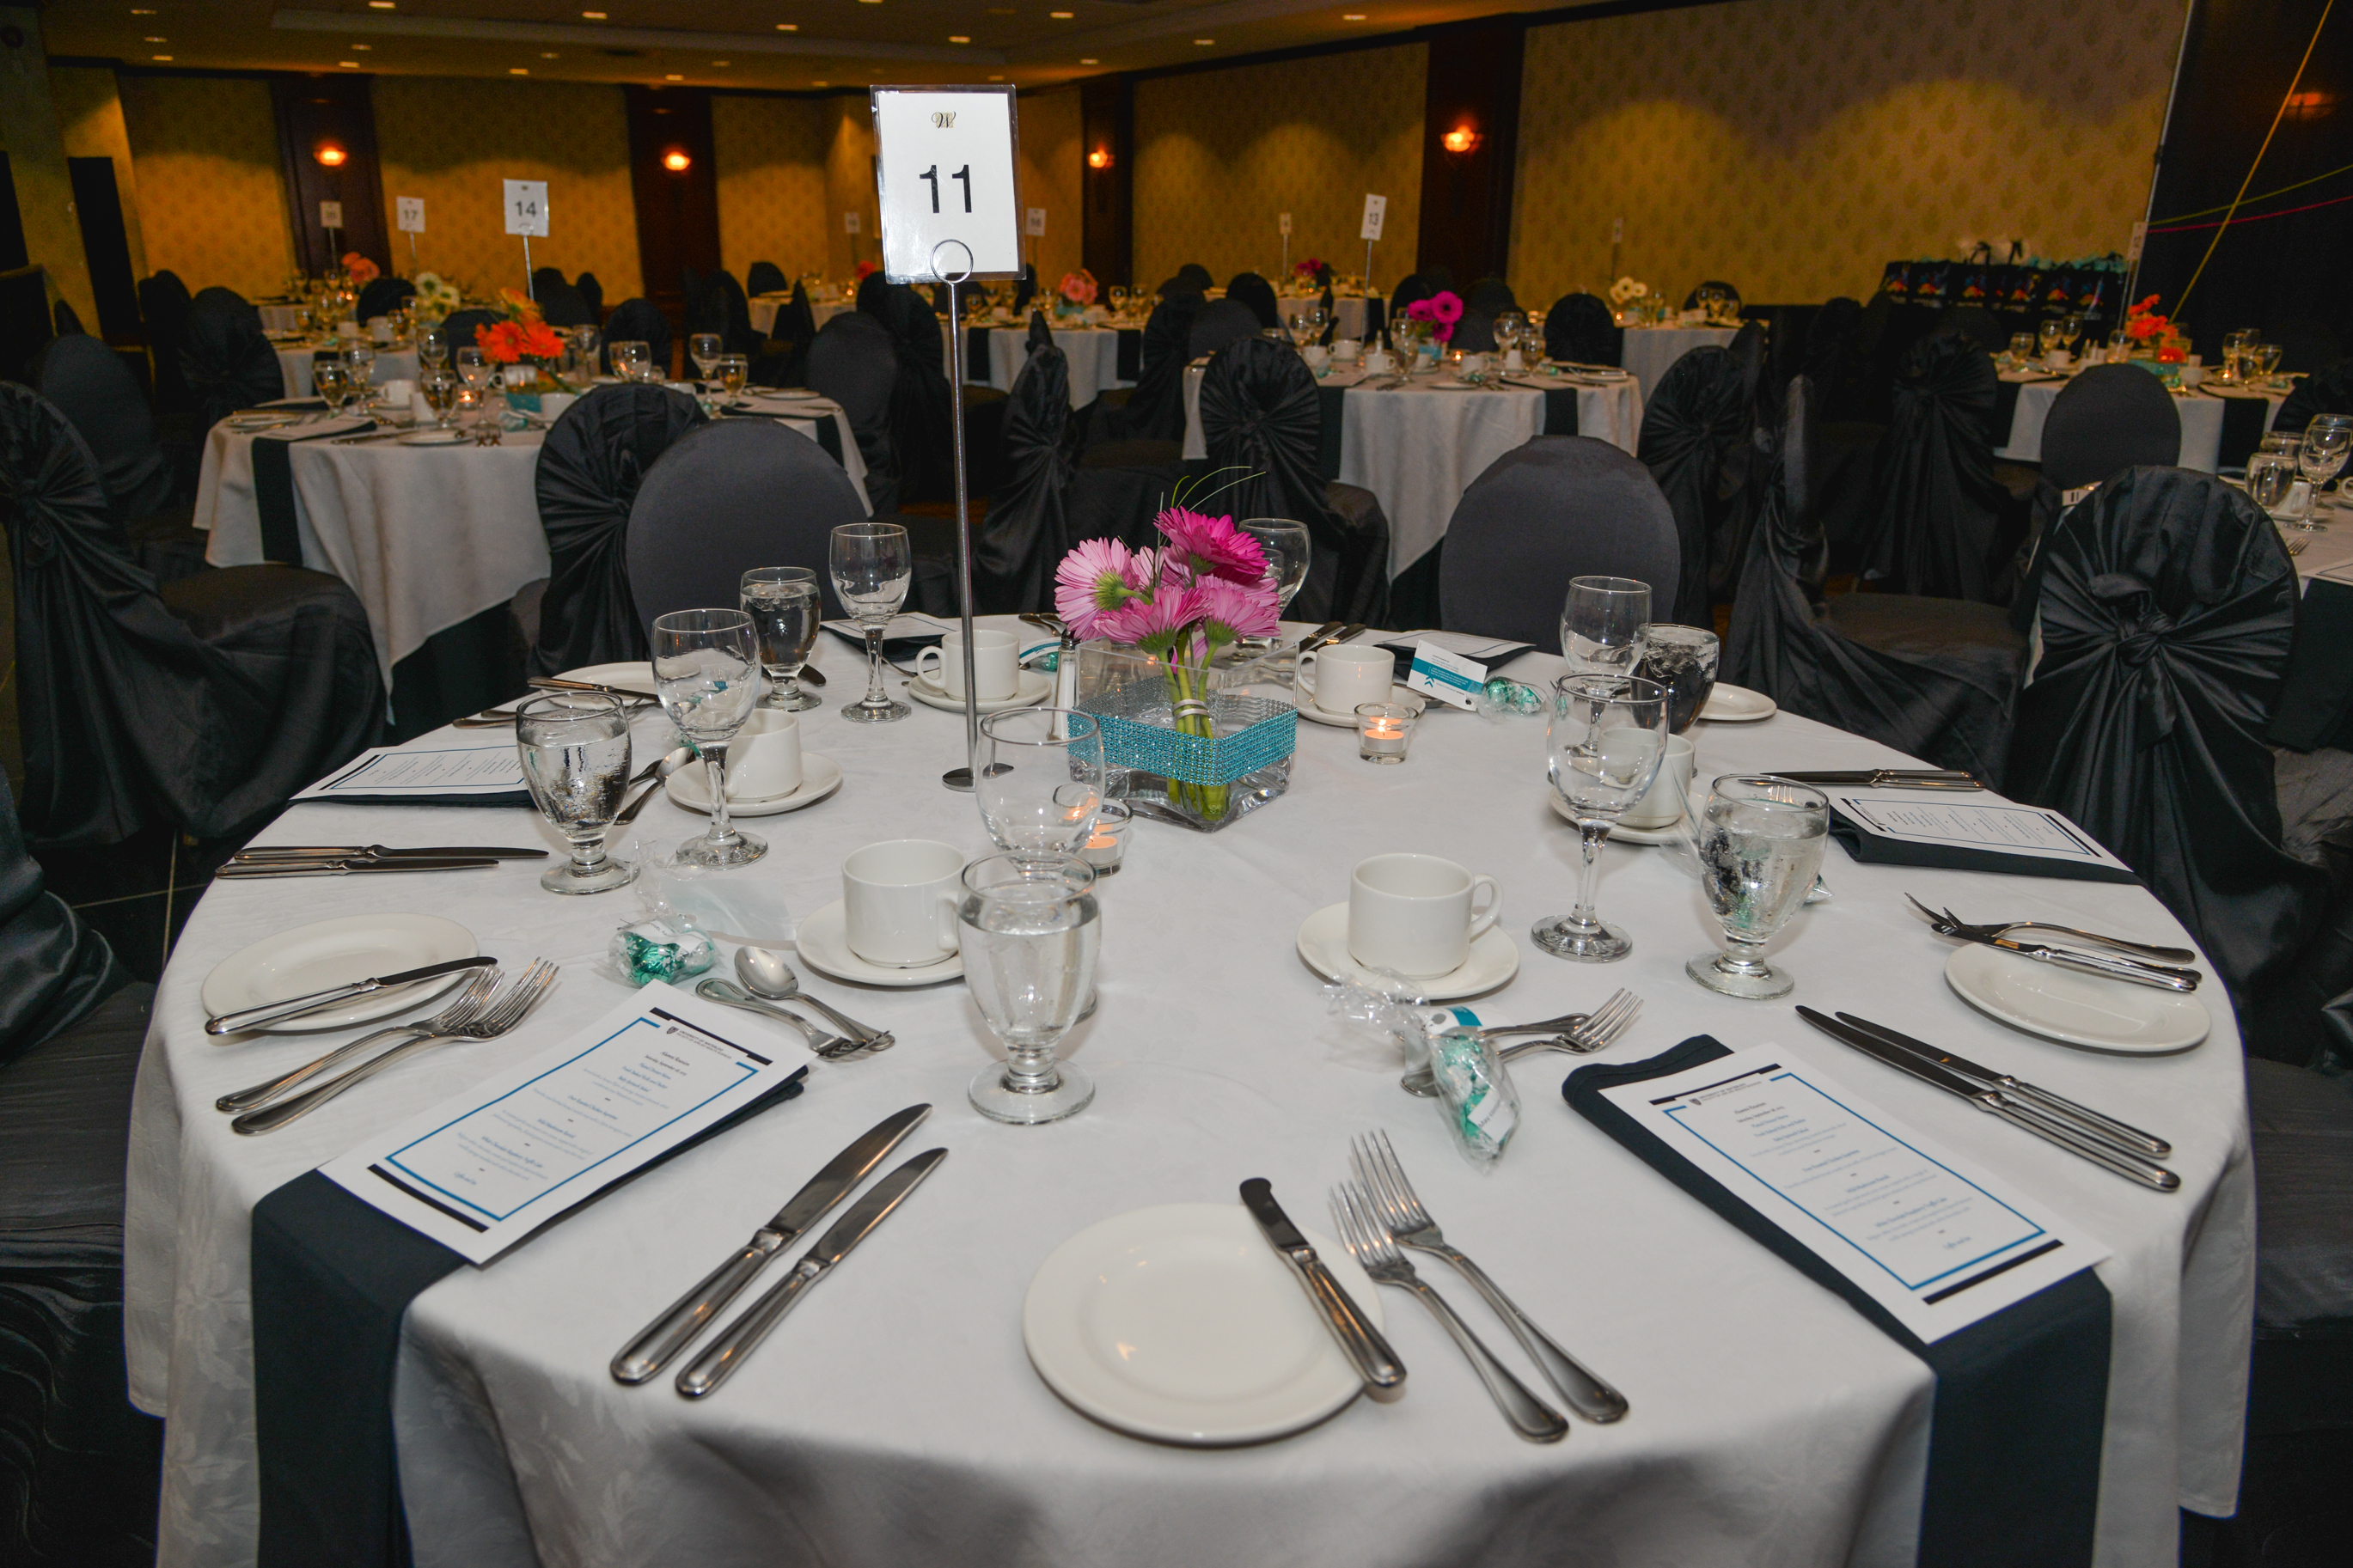 arrangement king s kings for arrangements table seating events banquet